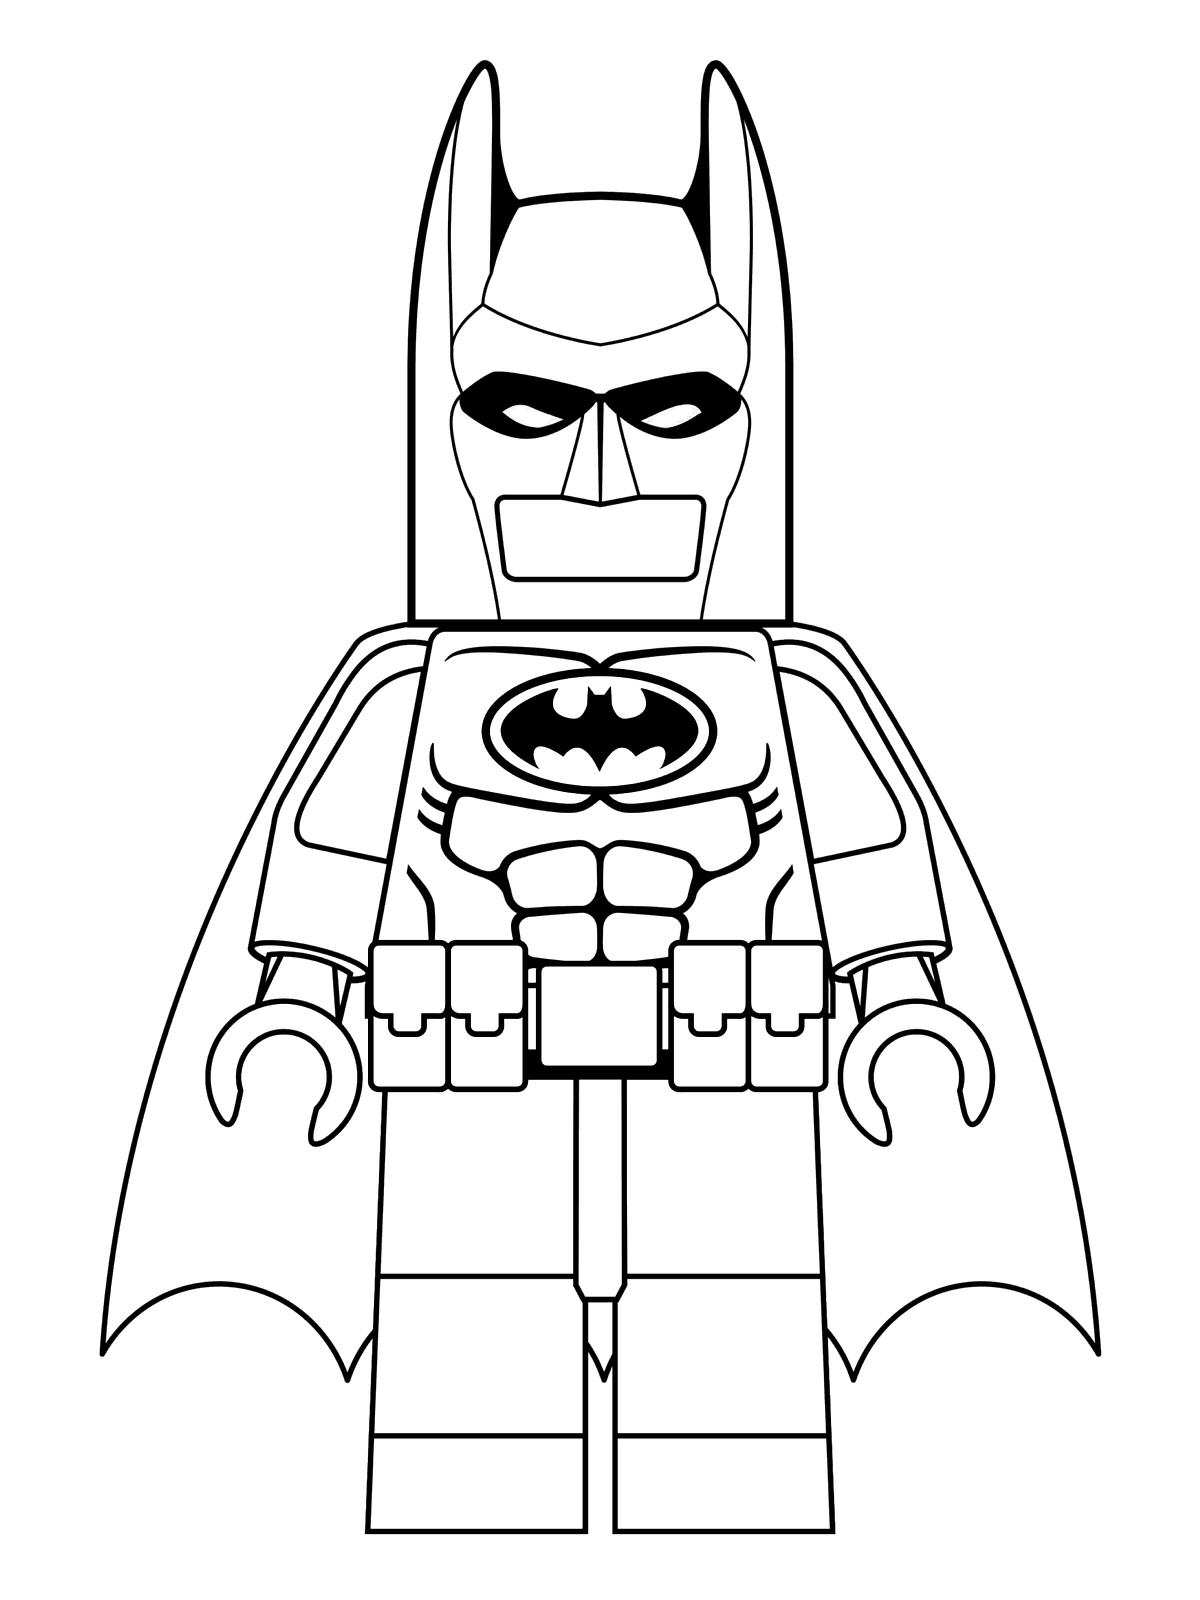 Beautiful Lego Batman coloring page